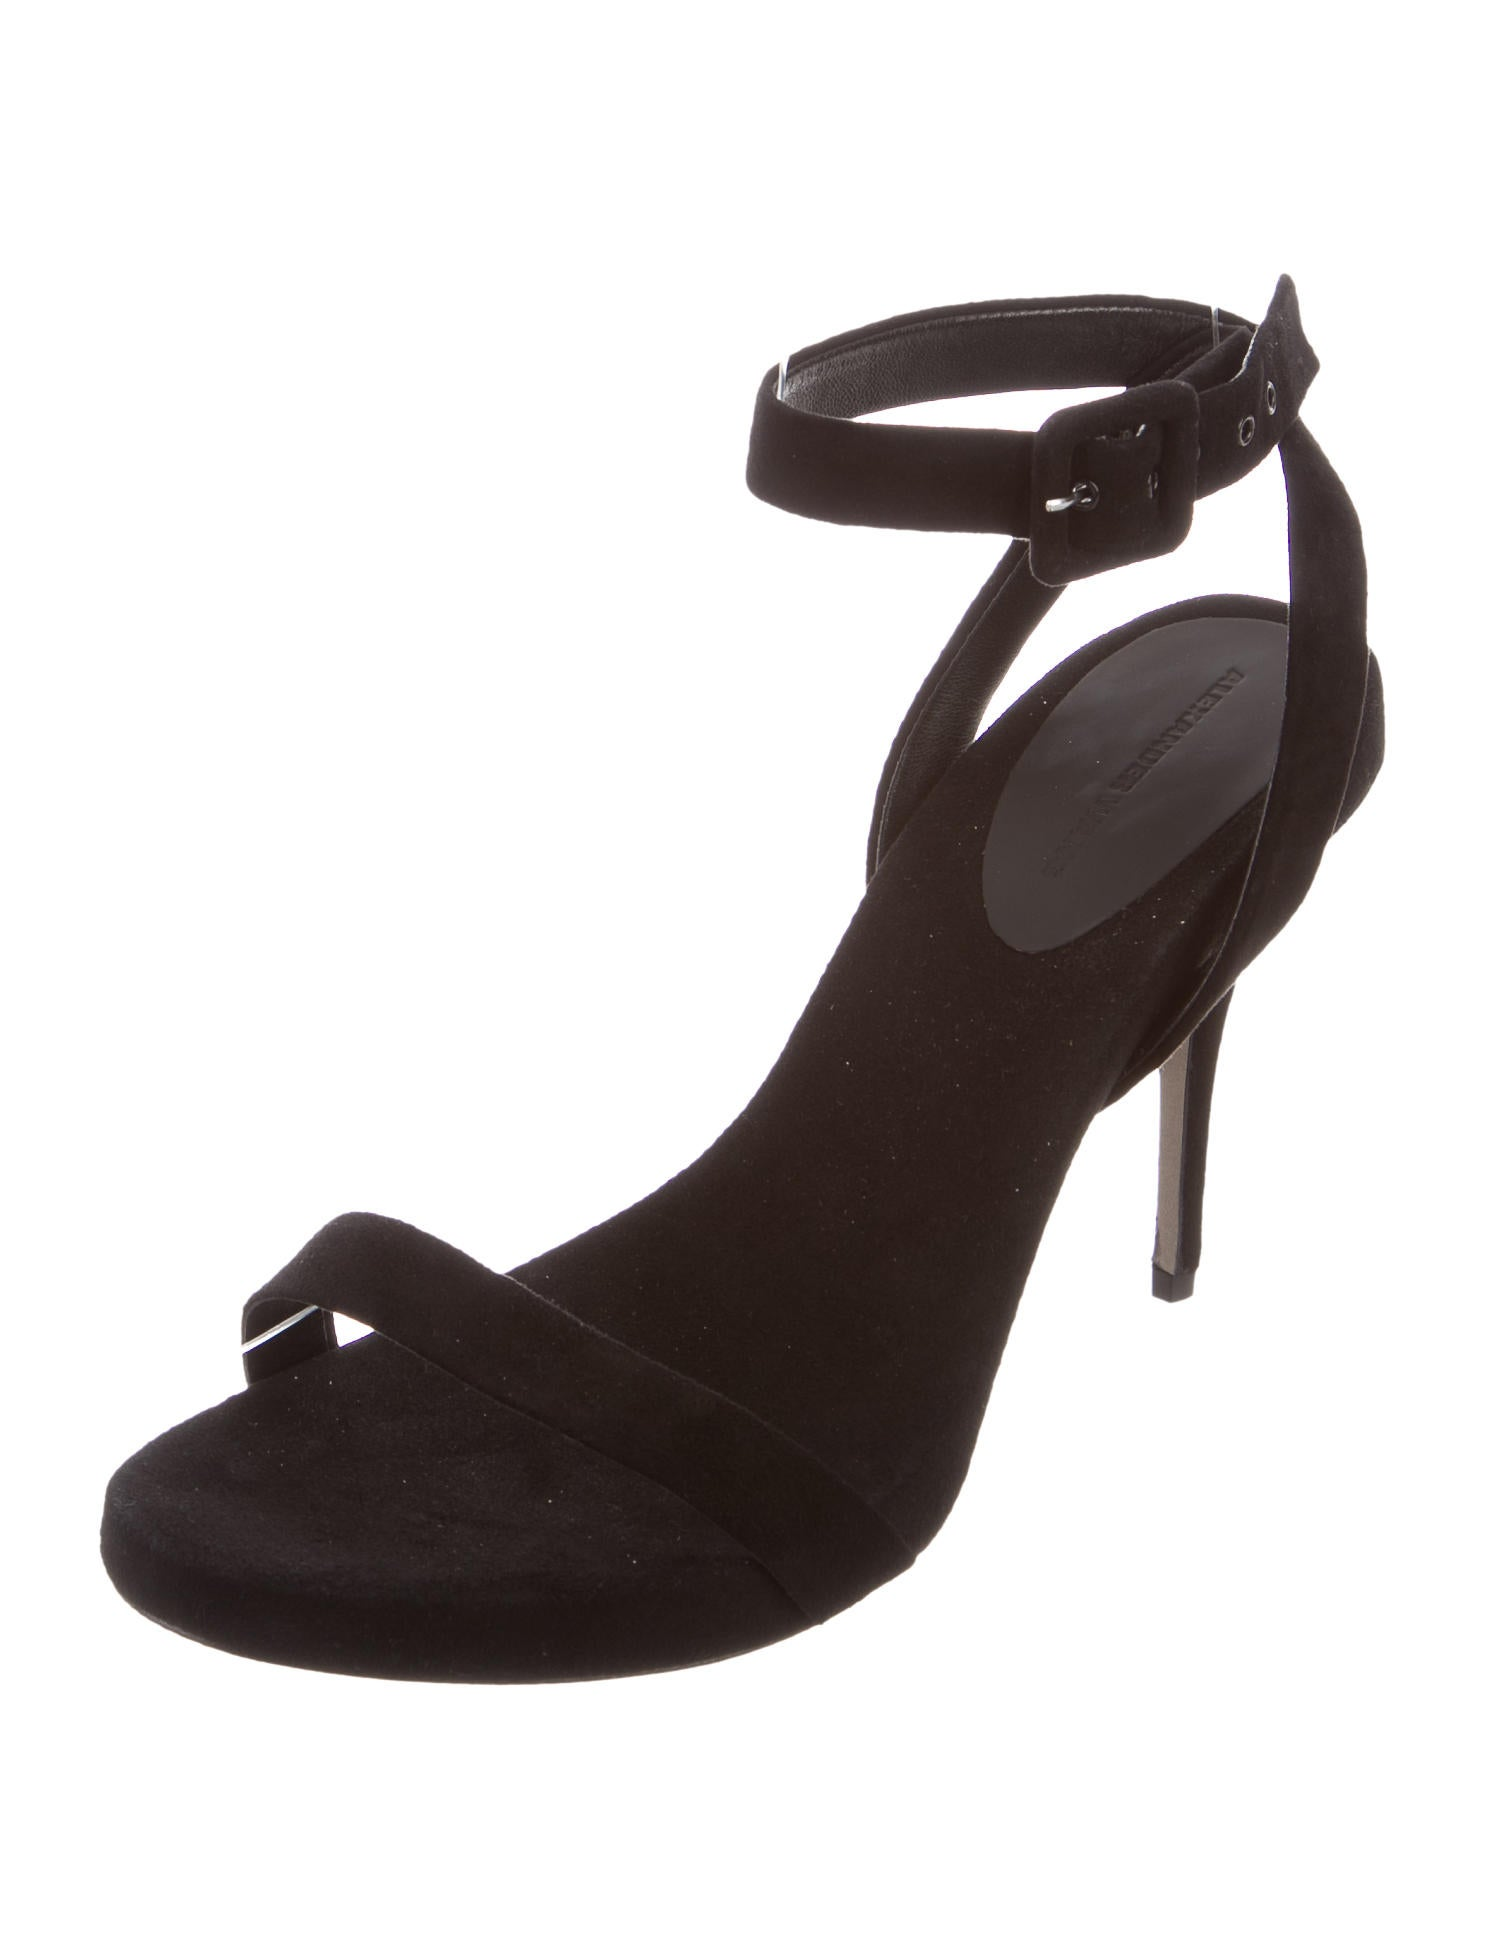 3871ad30ee3 Alexander Wang Suede Ankle Strap Sandals - Shoes .